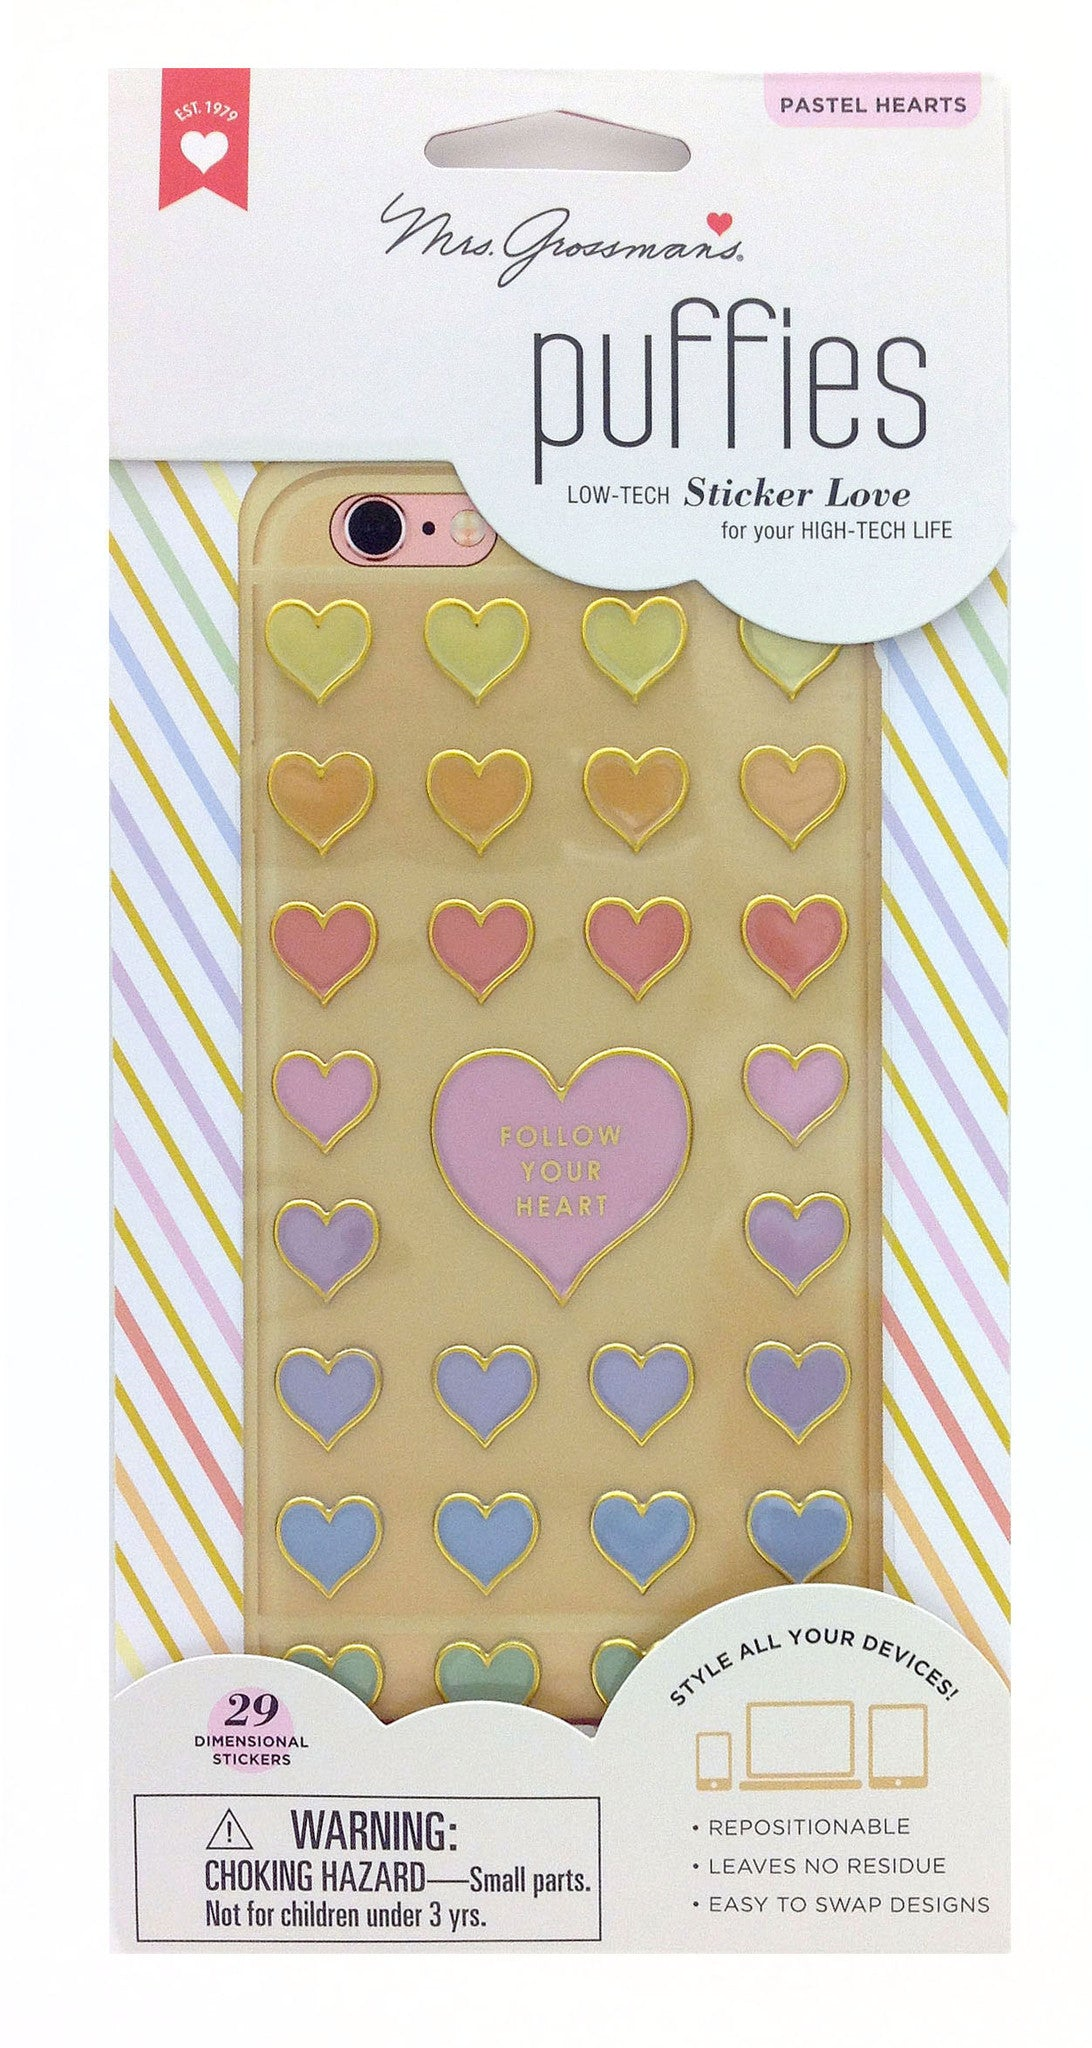 Pastel Hearts Puffies